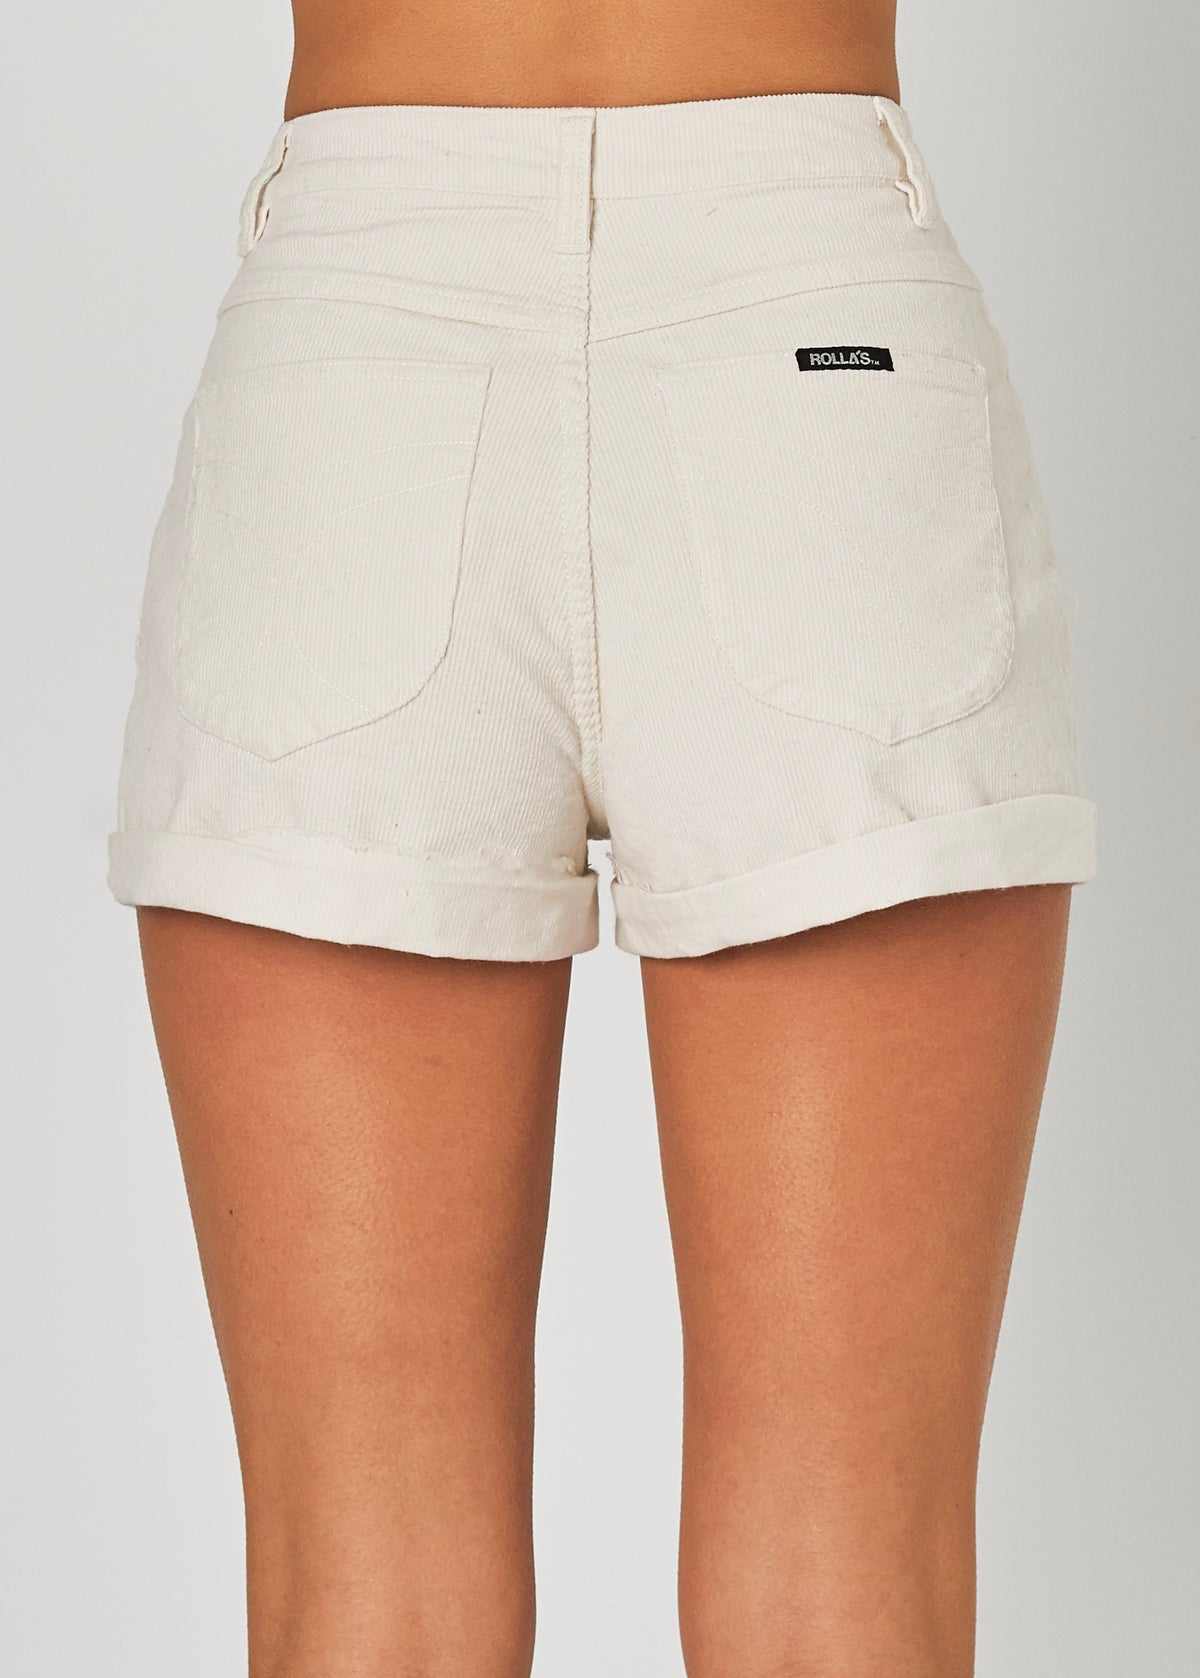 Off White Cord Dusters Shorts